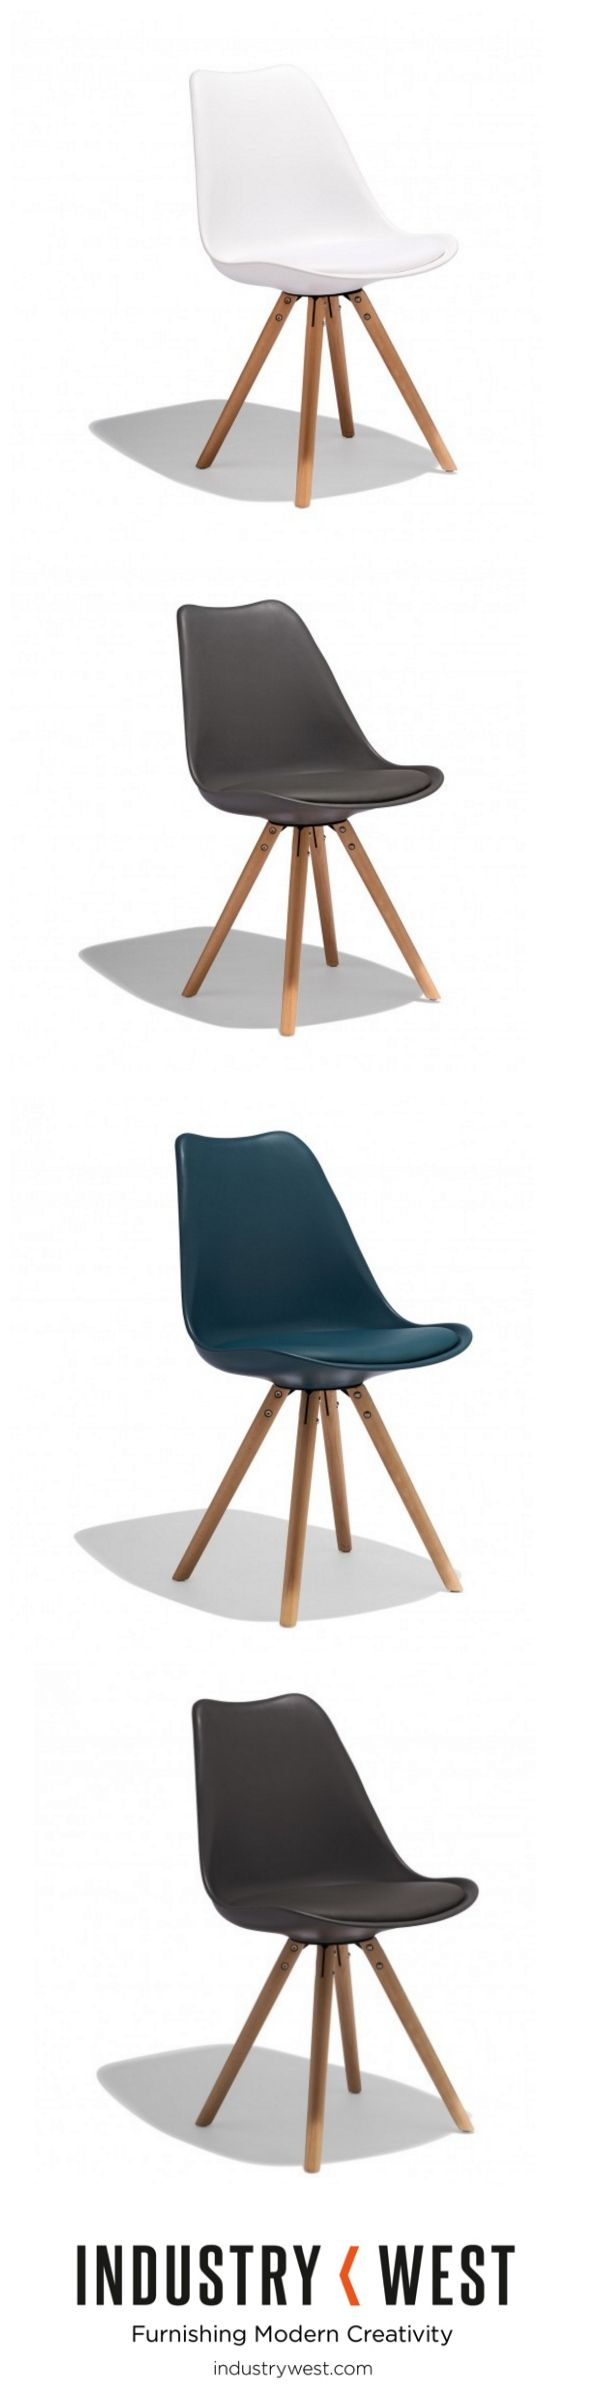 The Taka Side Chair is a new exploration of our expansion of the Lucia Collection that features solid beech mid century inspired bases with the classic tulip molded seat. The Taka Chair features a padded seat of split leather perfect for comfort and durability.